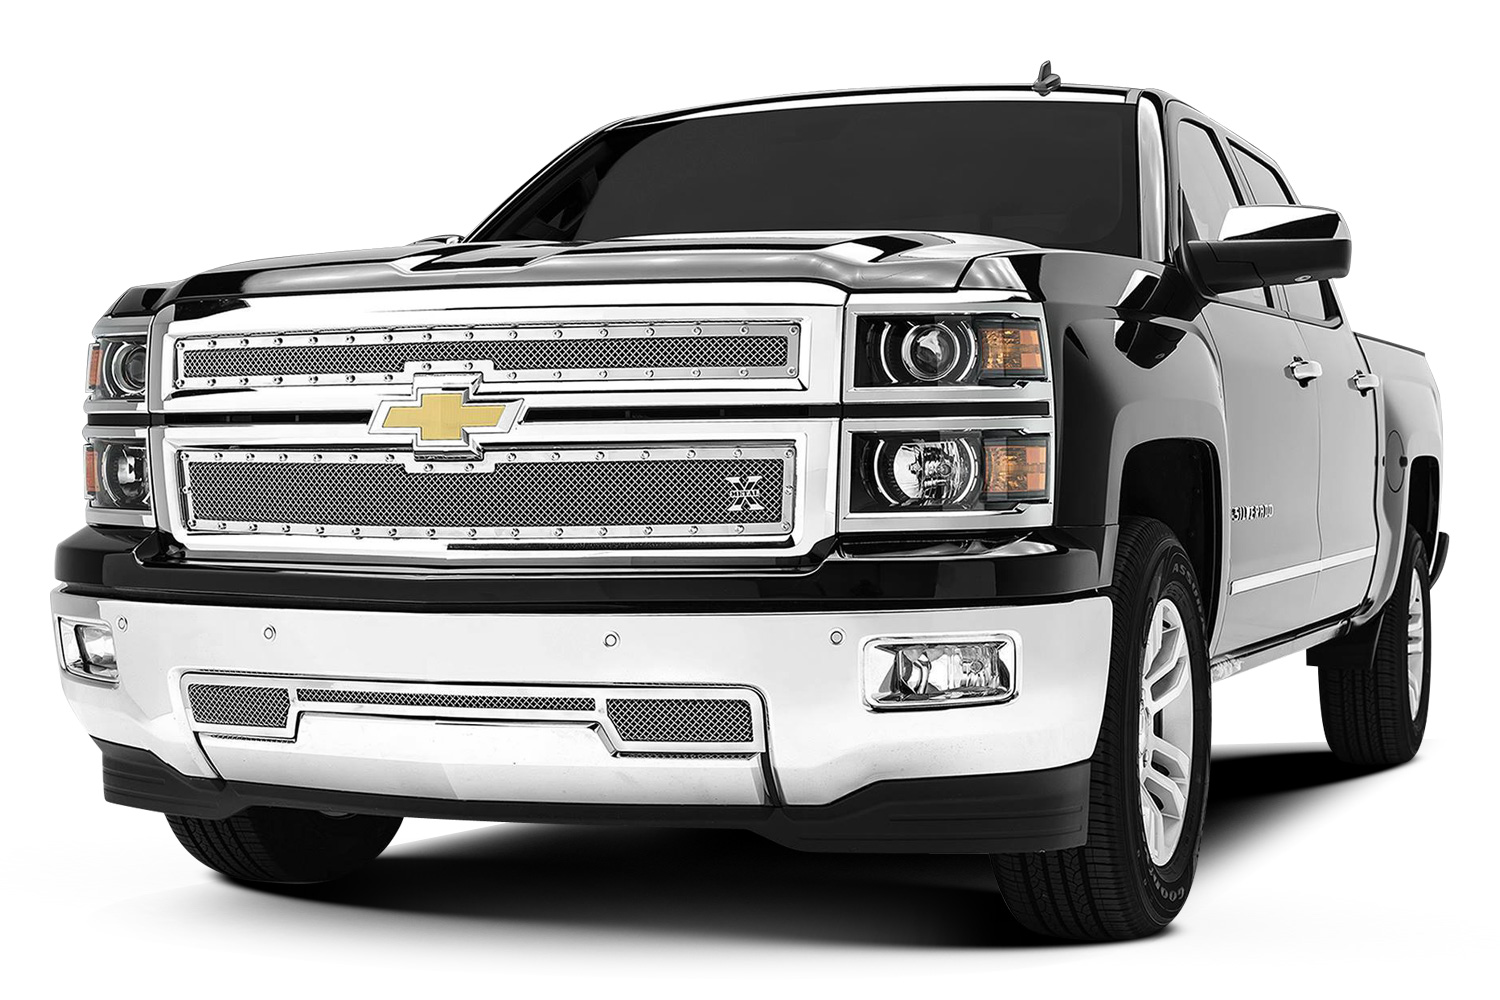 T Rex 2014 Chevy Silverado 1500 Grilles Available Now